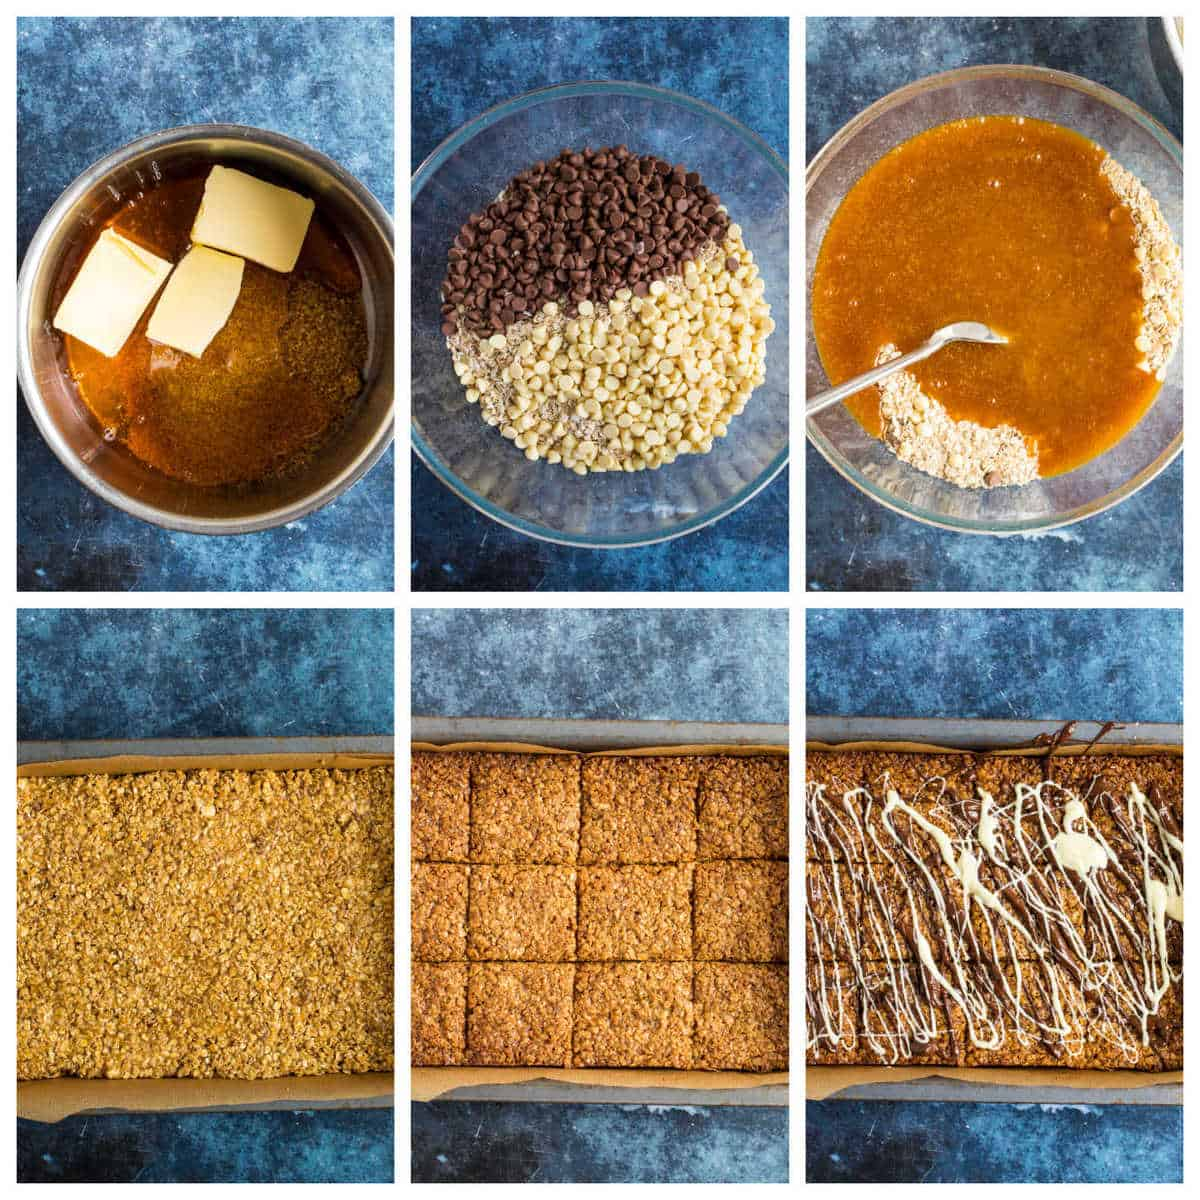 Step by step photo instructions for making chocolate flapjacks.